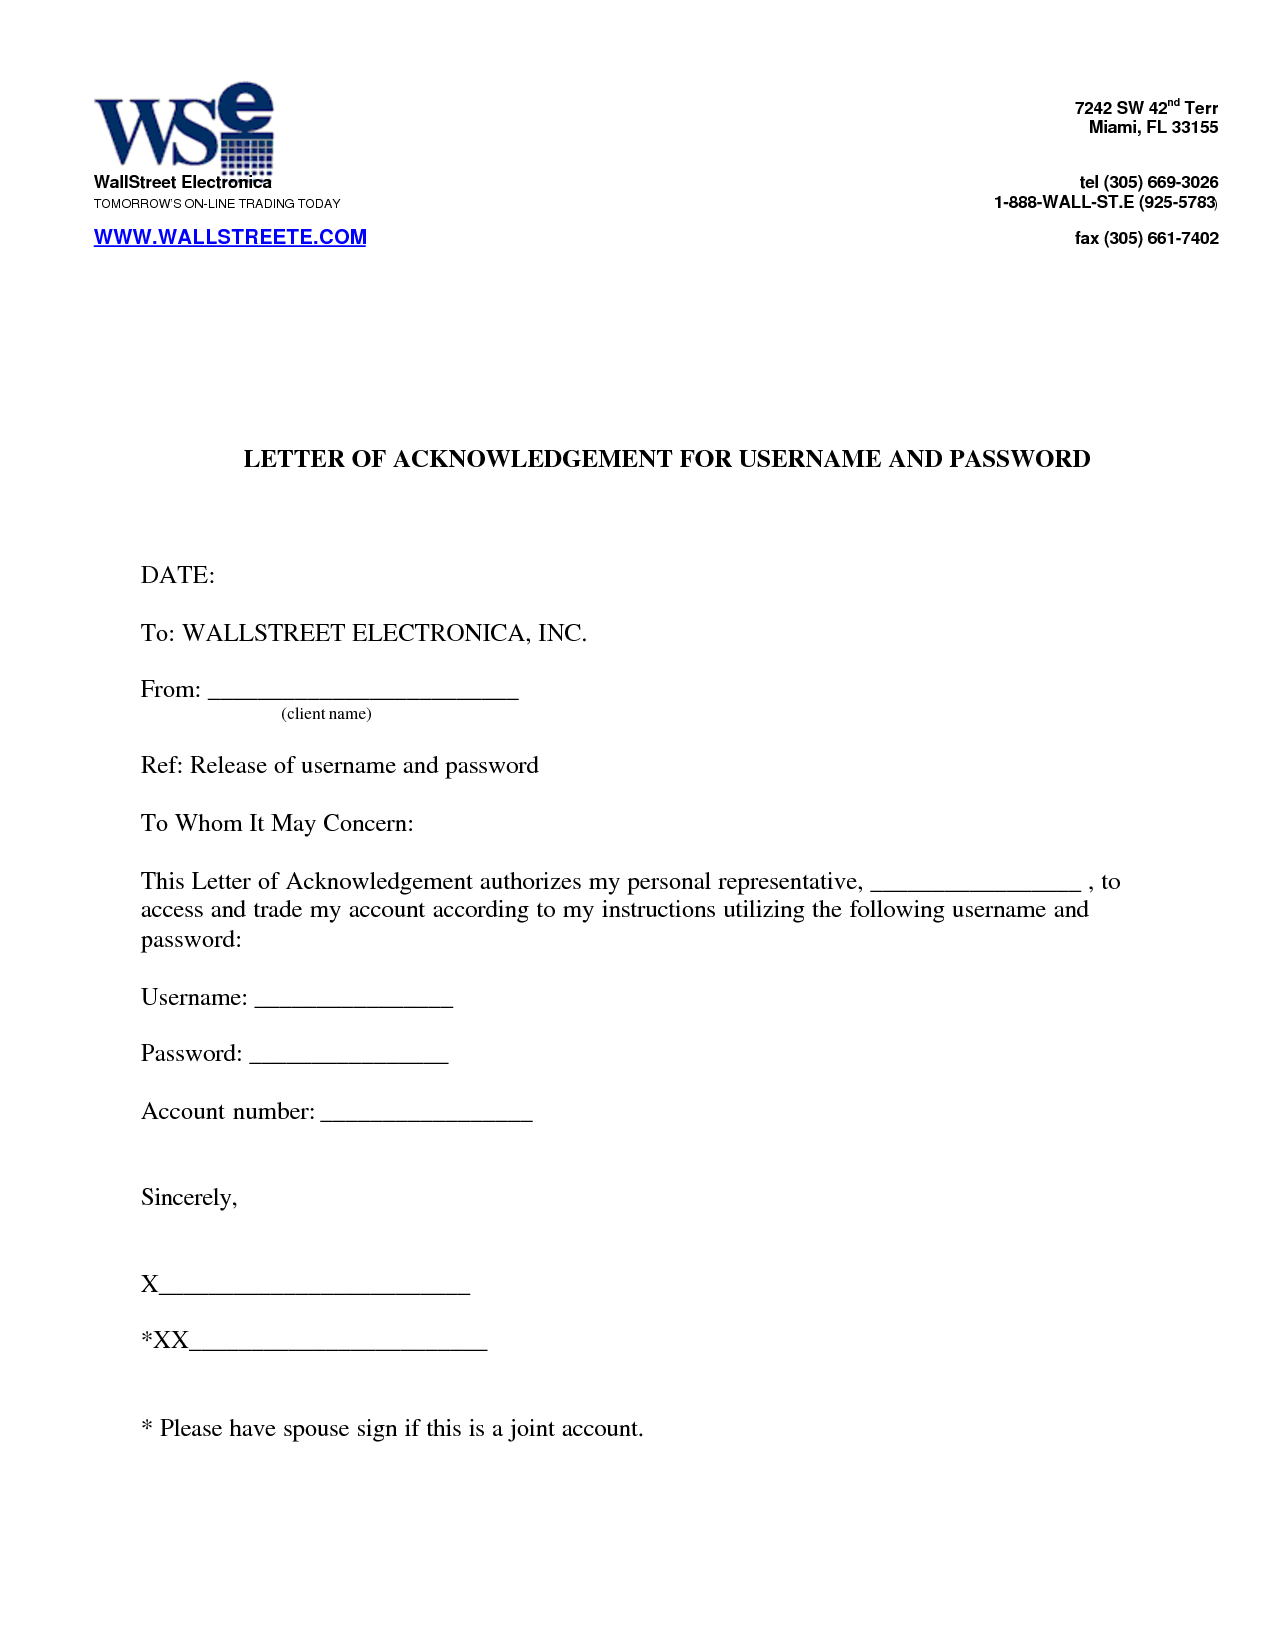 Payment acknowledgement letter sample cover latter sample appointment letter templates free sample example format confirmation for employee malaysia cover payment acknowledgement latter best free home design spiritdancerdesigns Images